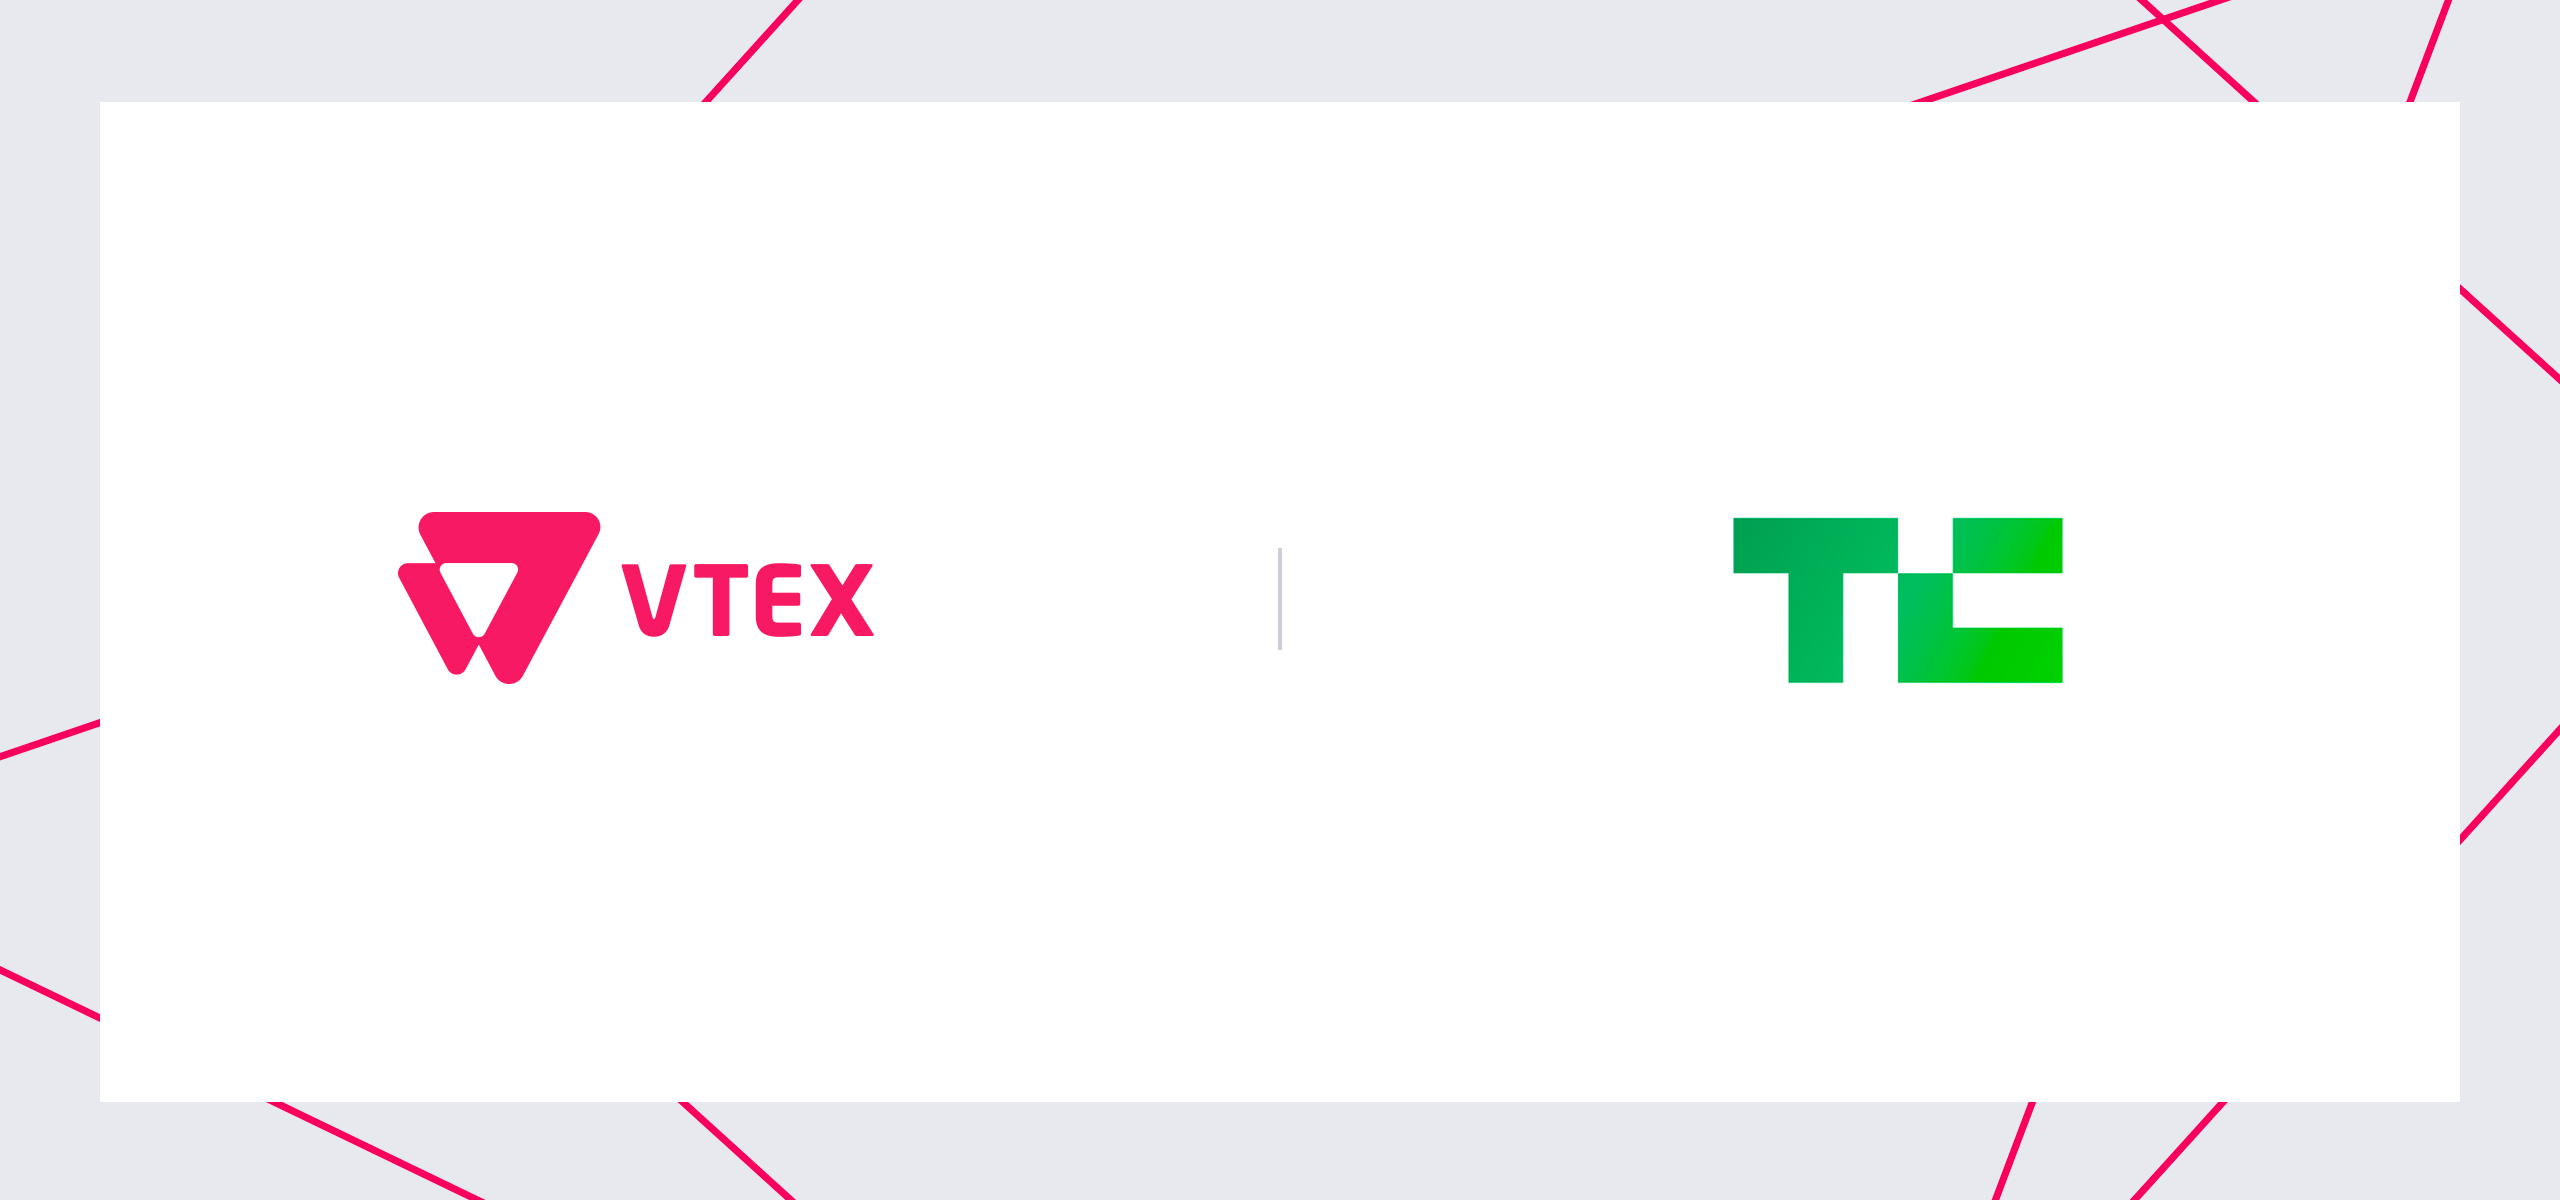 News: VTEX - Techcrunch -